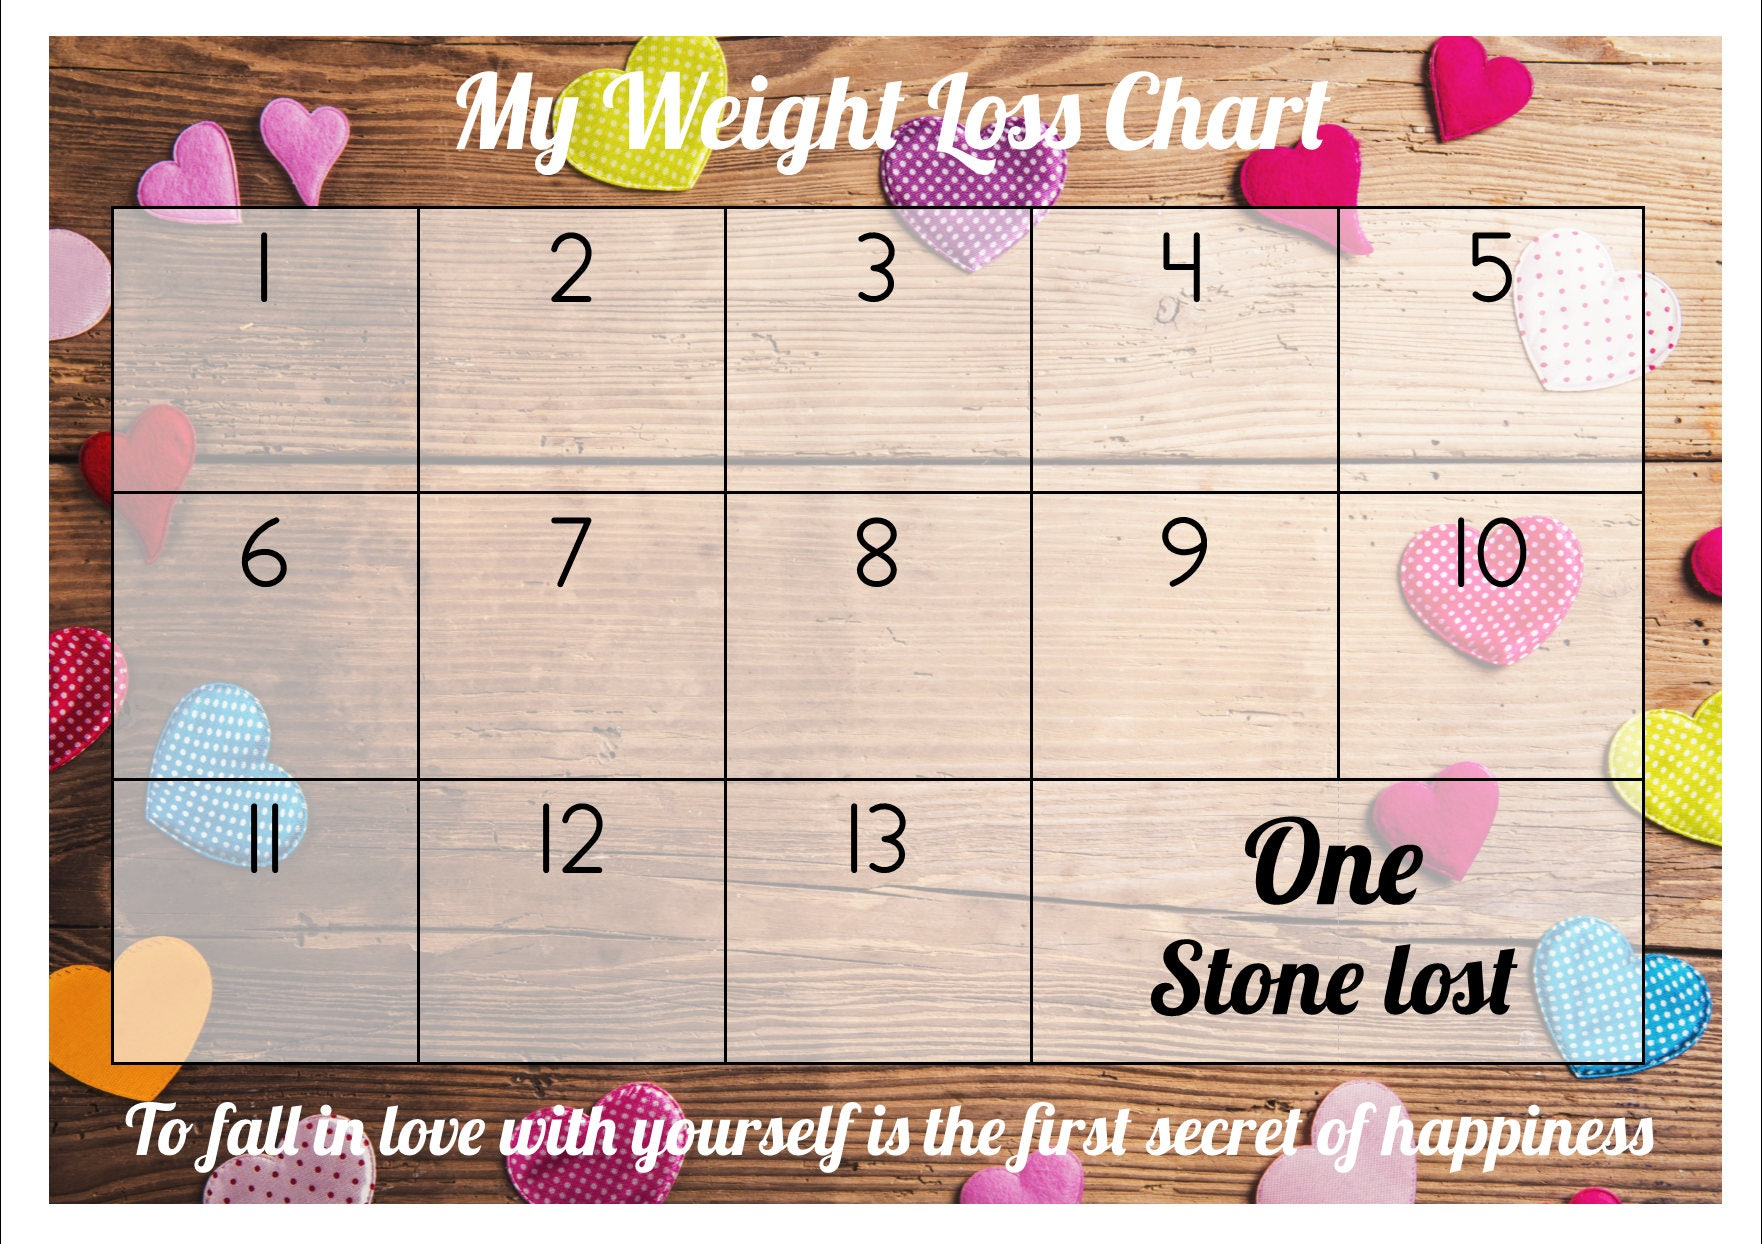 Weight loss chart tracker 1 stone comes with star description weight loss chart tracker nvjuhfo Gallery